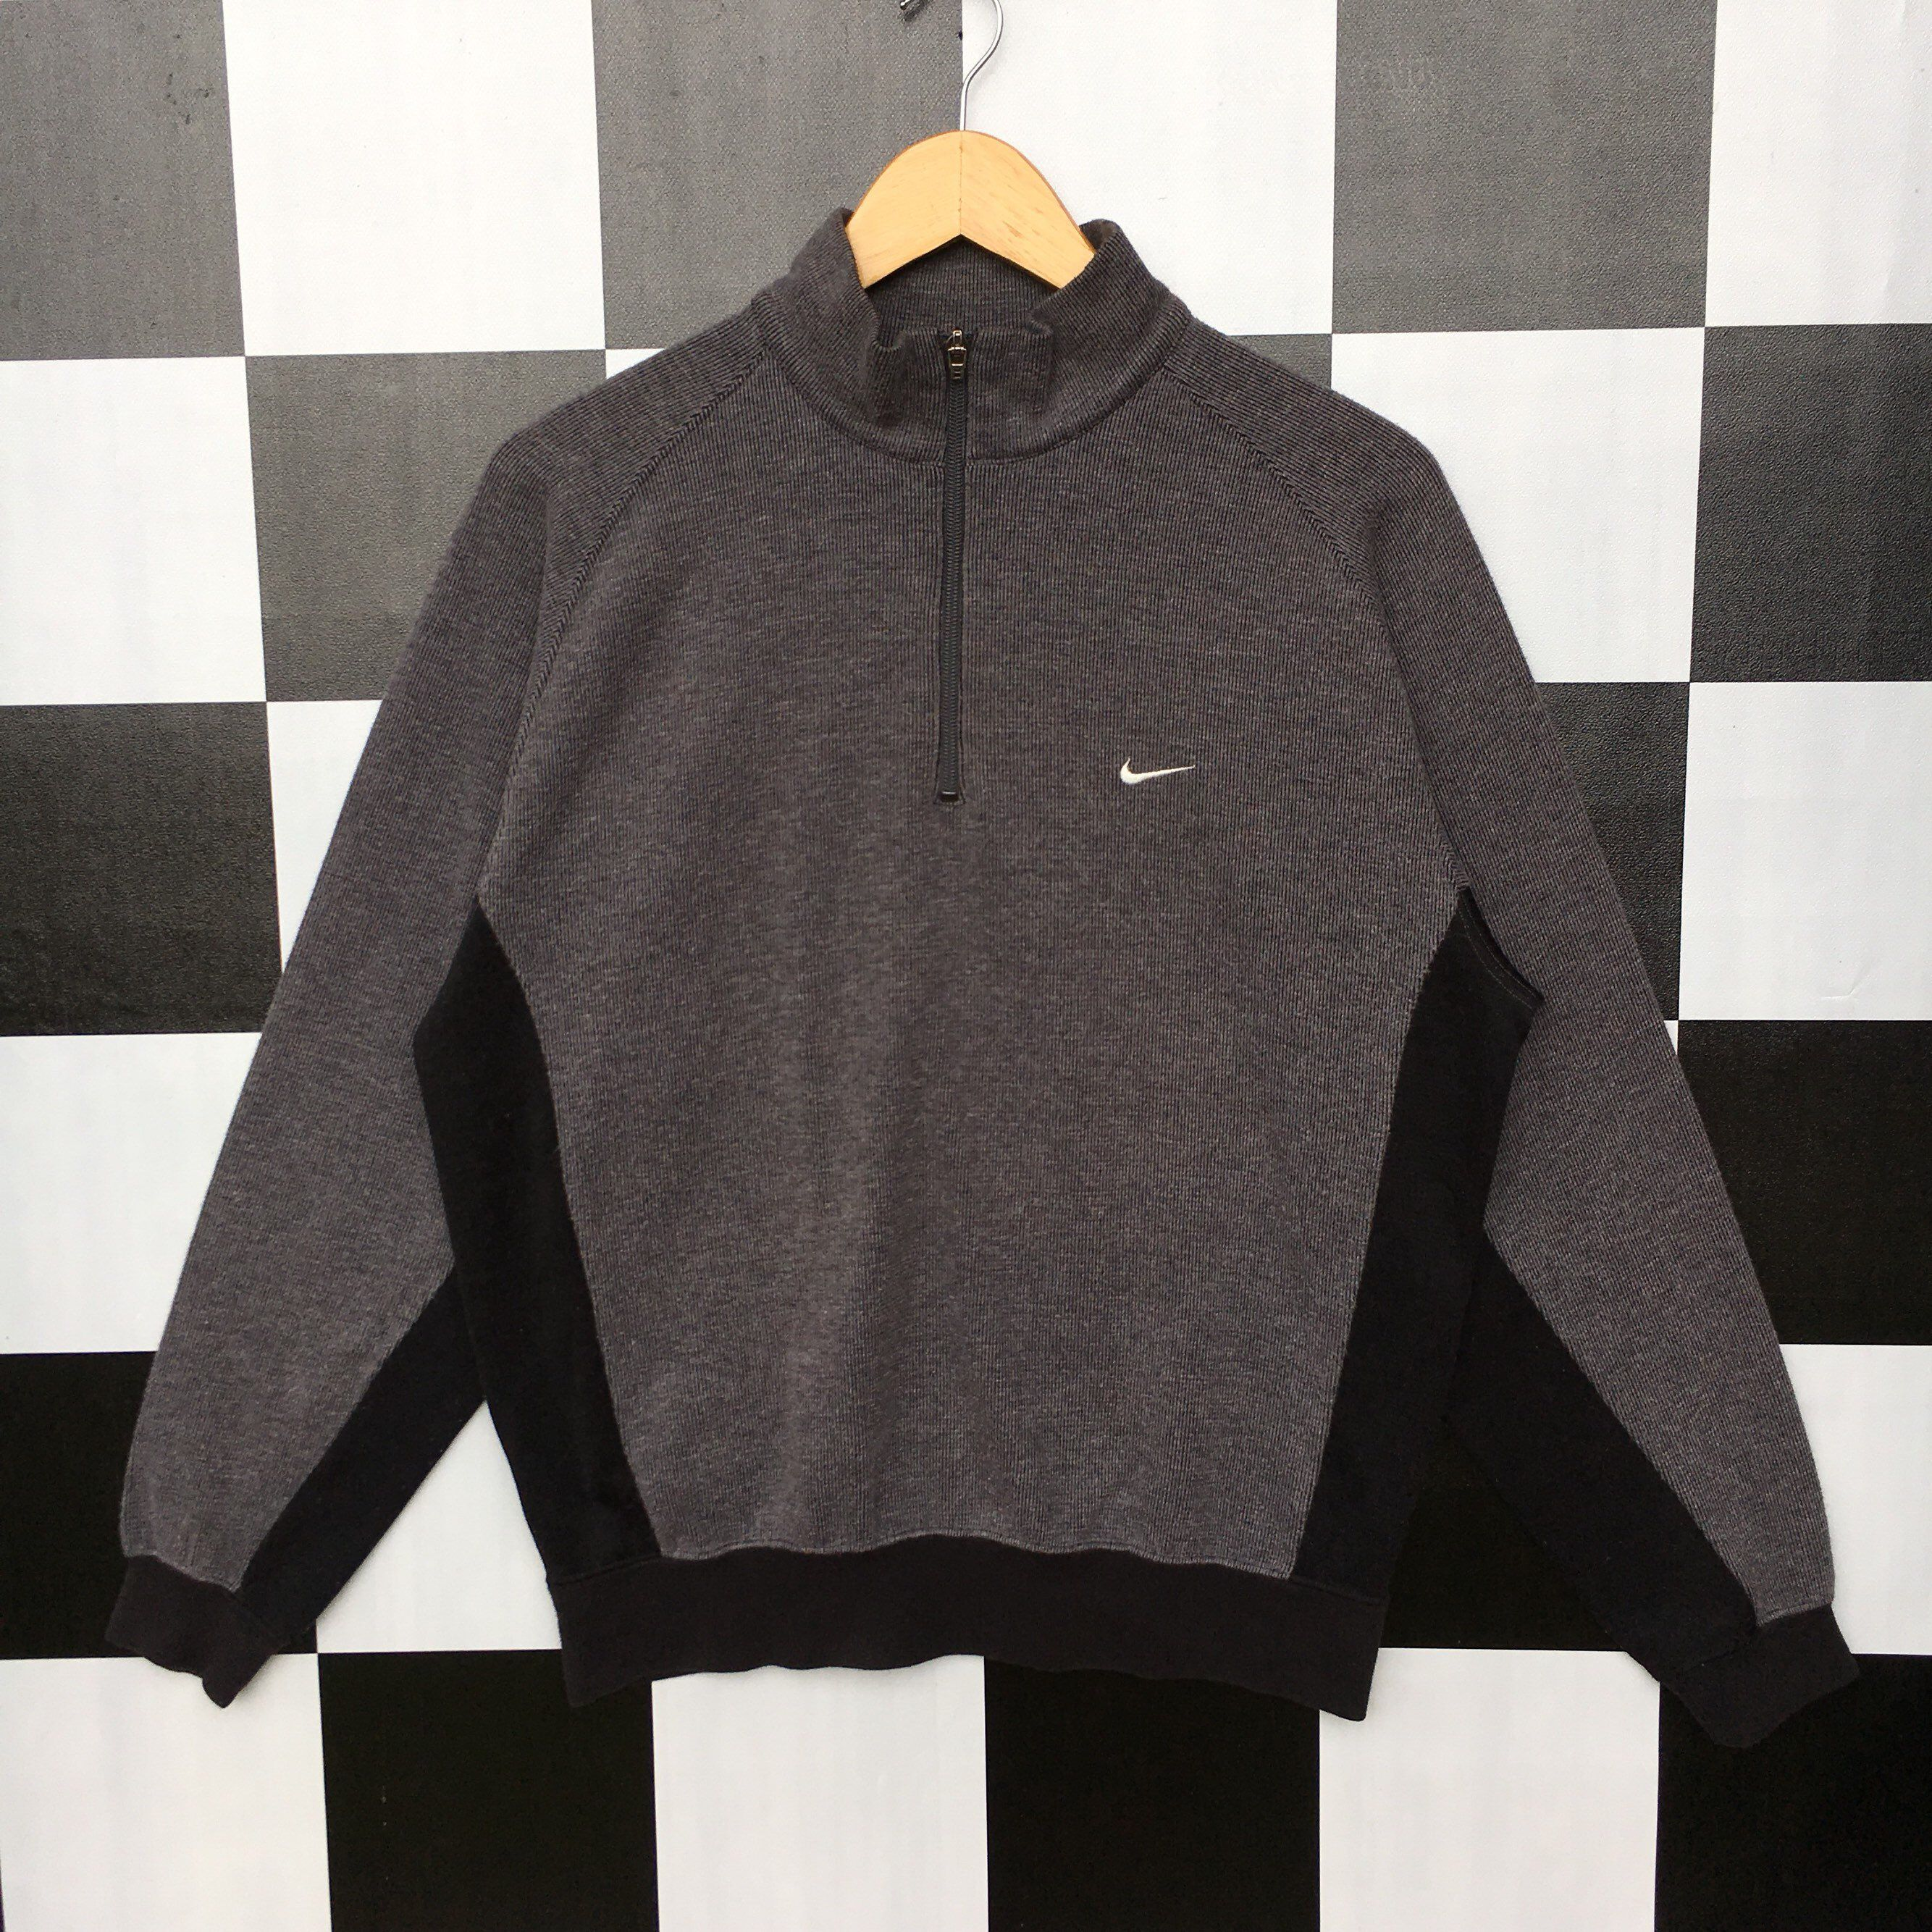 Excited To Share The Latest Addition To My Etsy Shop Vintage Nike Golf Half Zip Small Logo Sweatshirt Jumper P Nike Sweatshirts Vintage Nike Trending Outfits